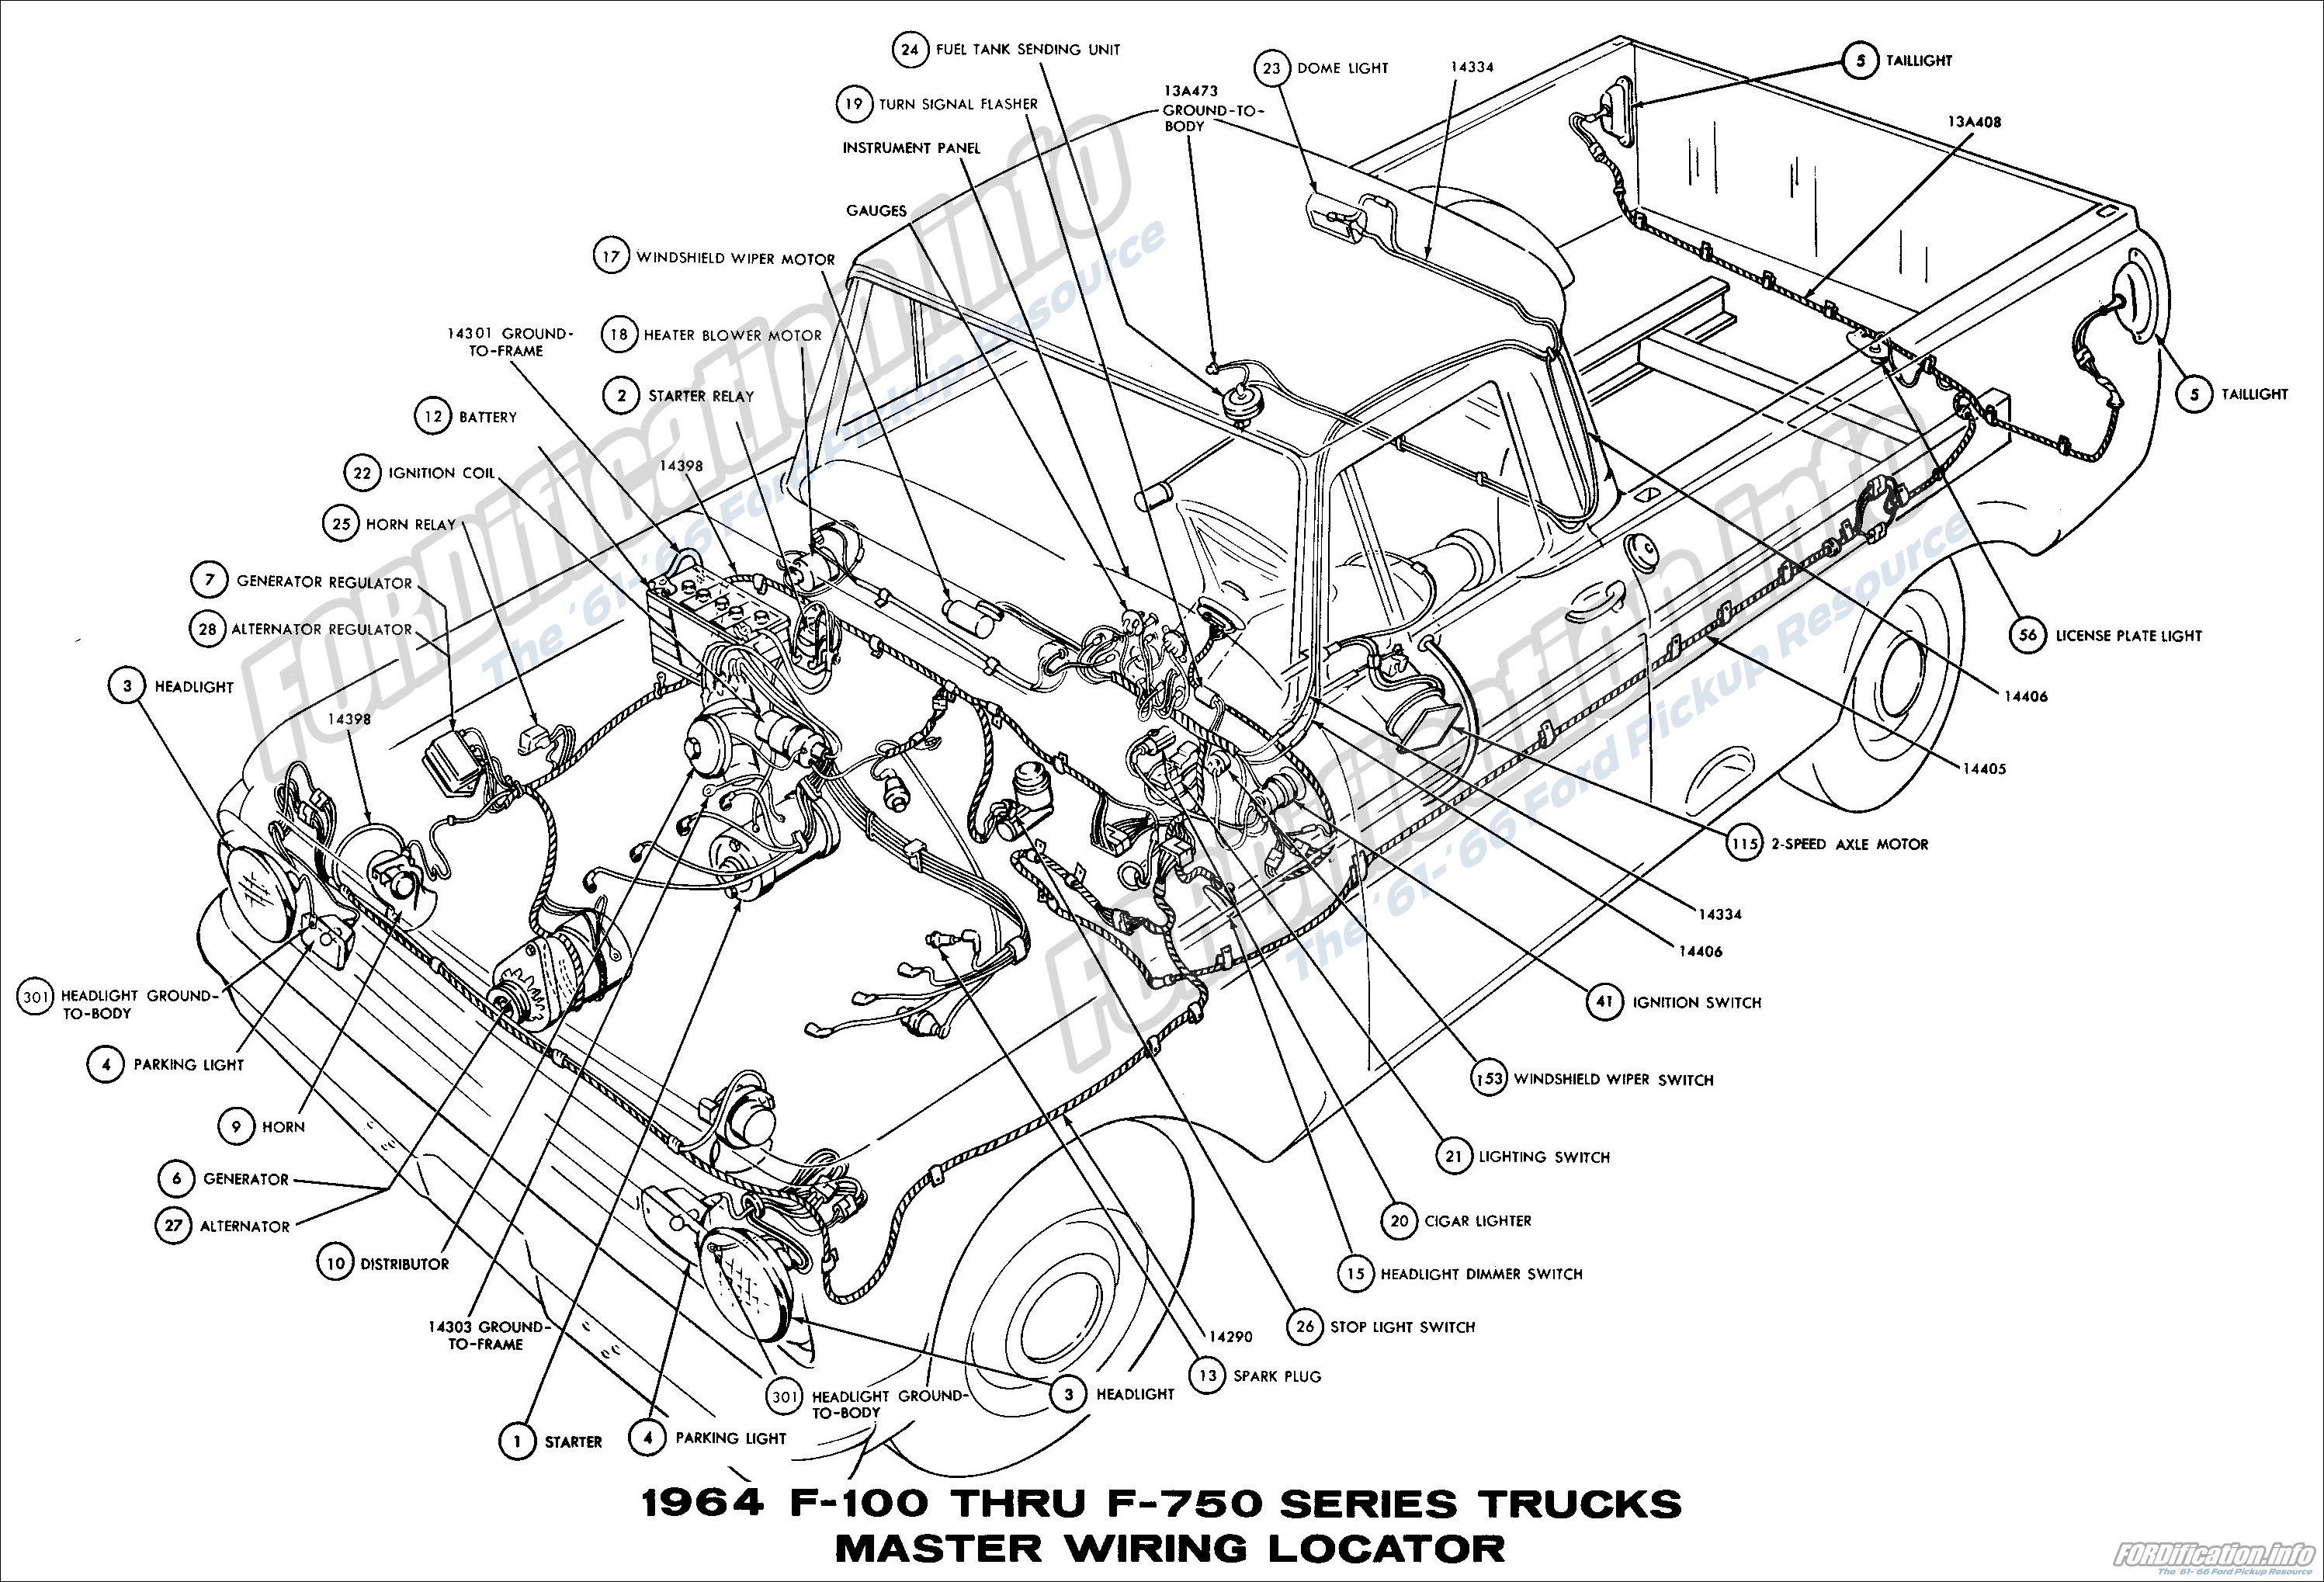 1964_01_gif 1964 ford truck wiring diagrams fordification info the '61 '66 ford truck wiring diagrams at suagrazia.org